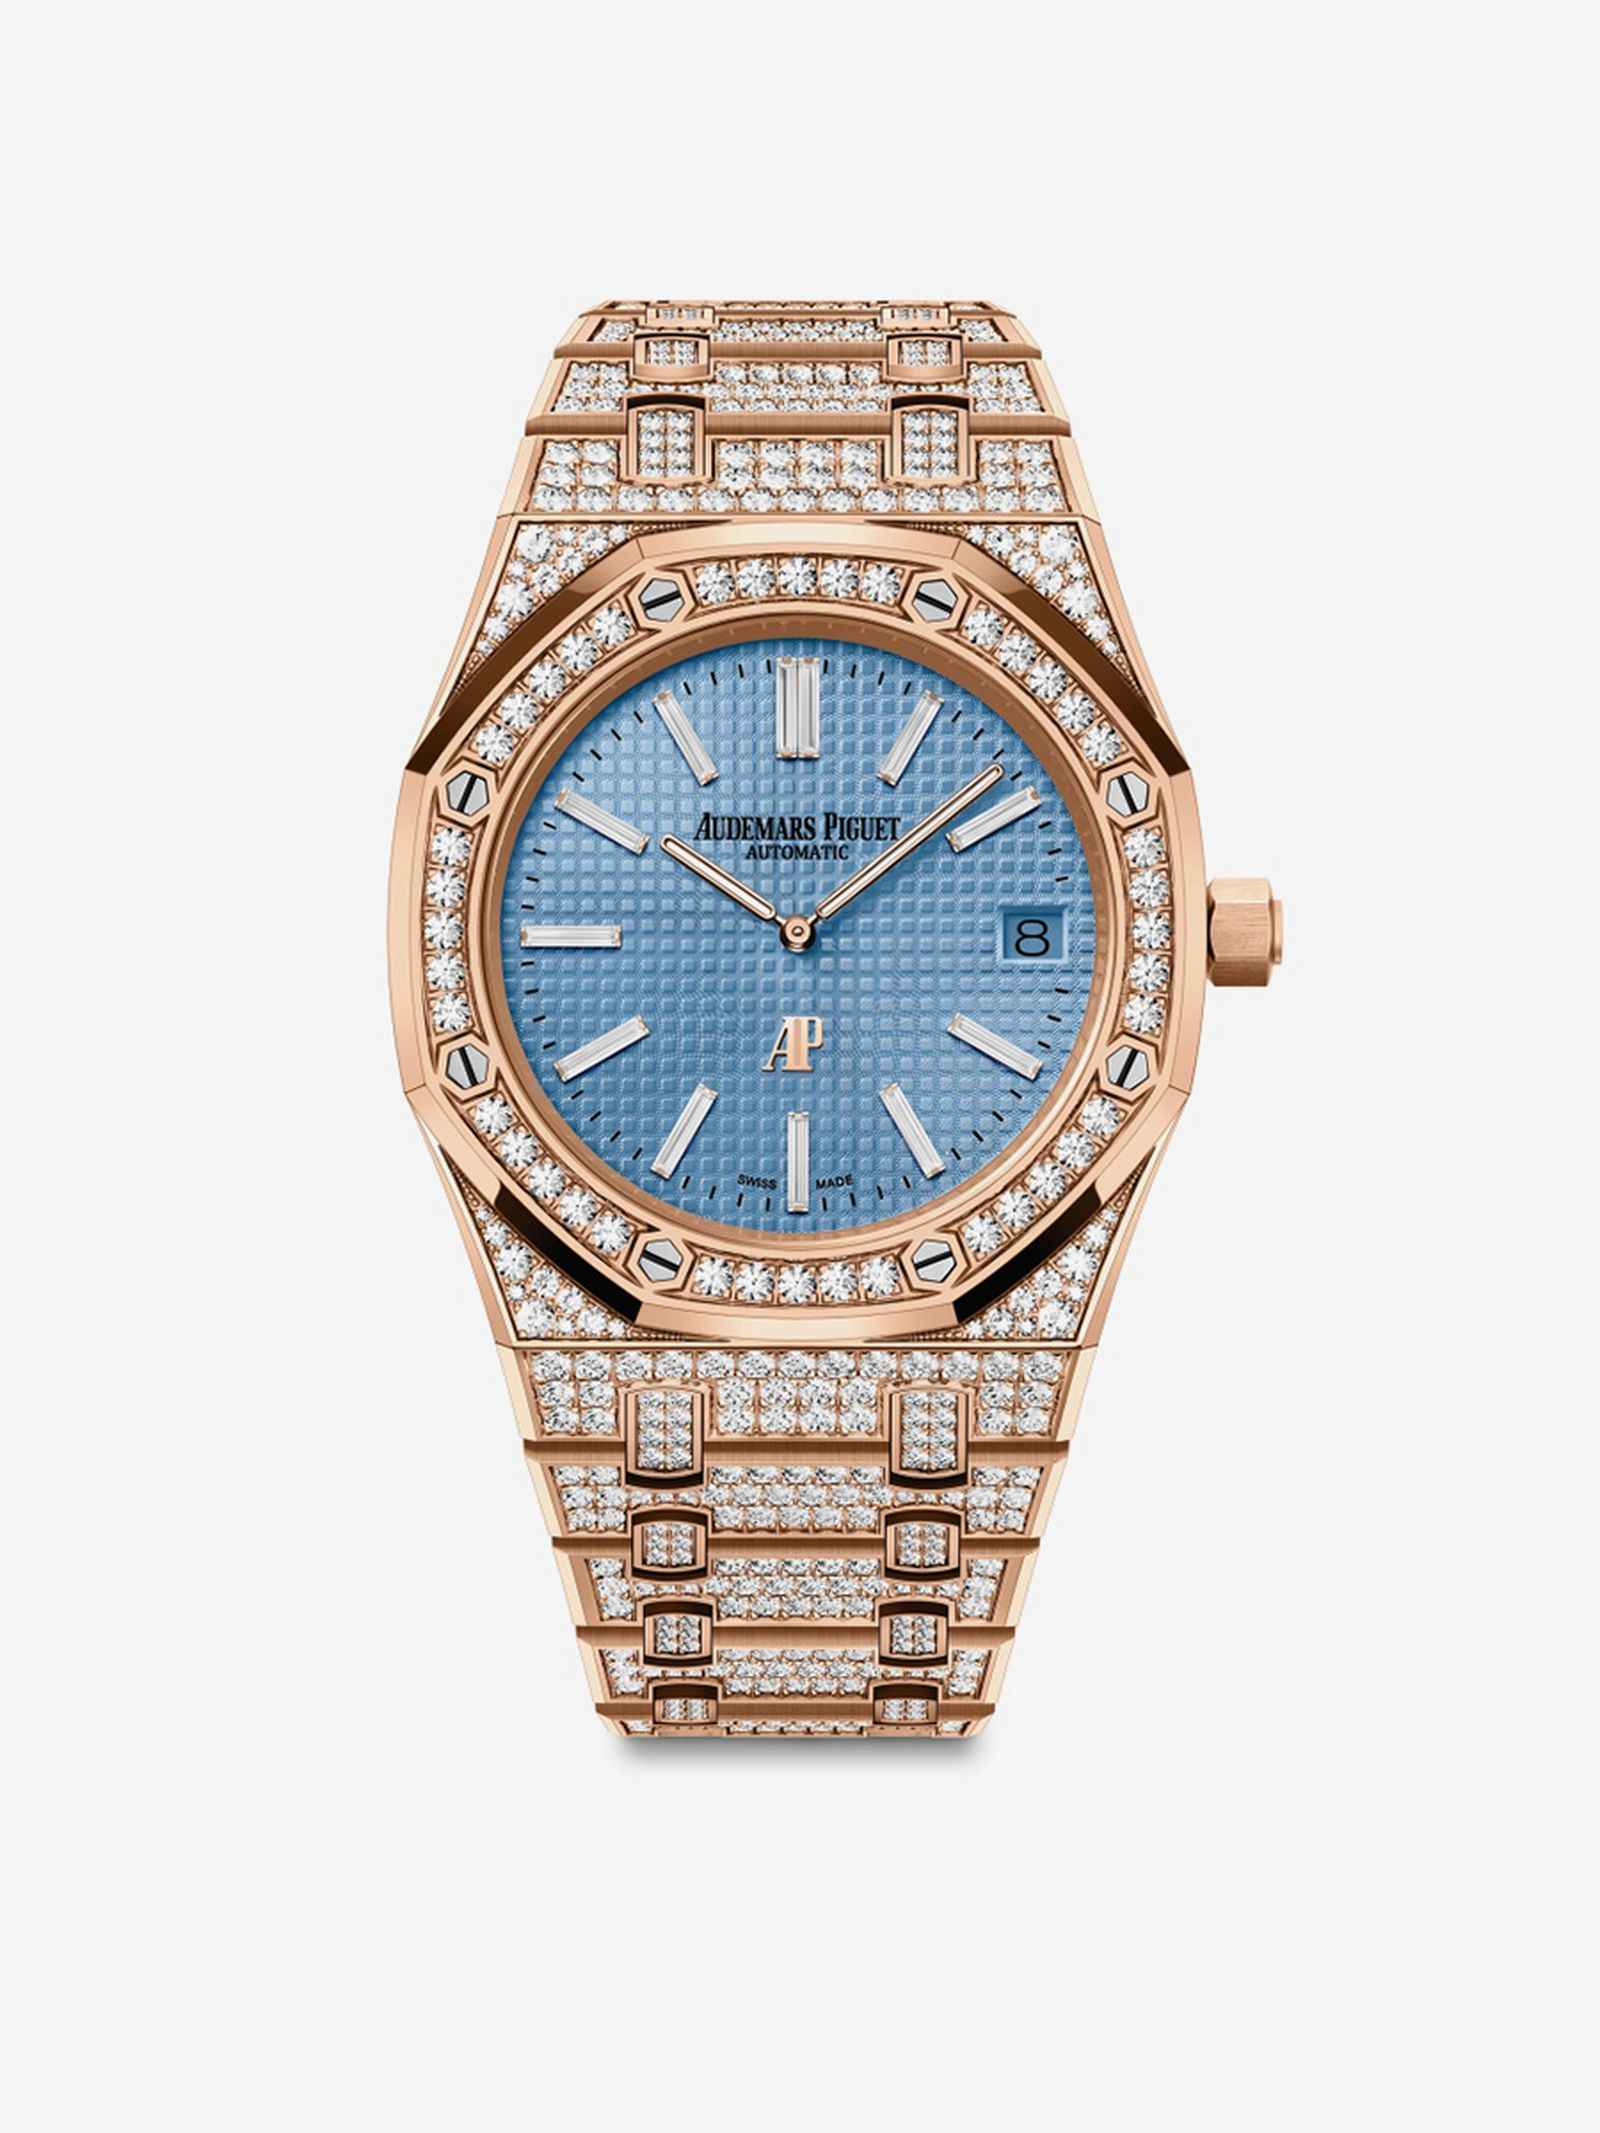 audemars-piguet-royal-oak-jumbo-extra-thin-diamond-set-03